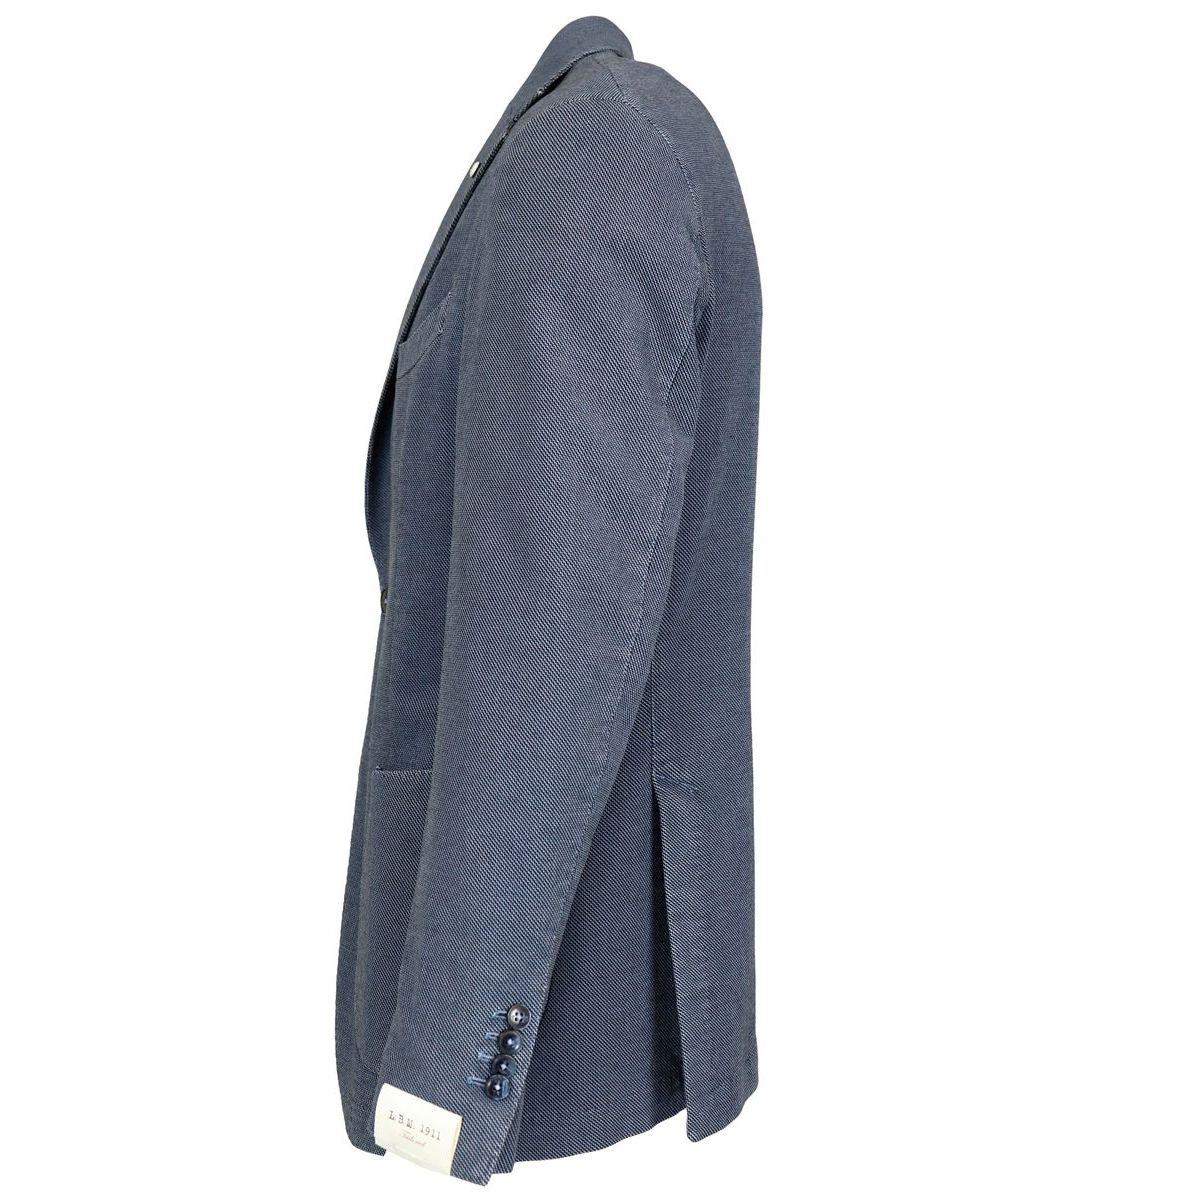 Two-button jacket in textured cotton Light blue L.B.M. 1911